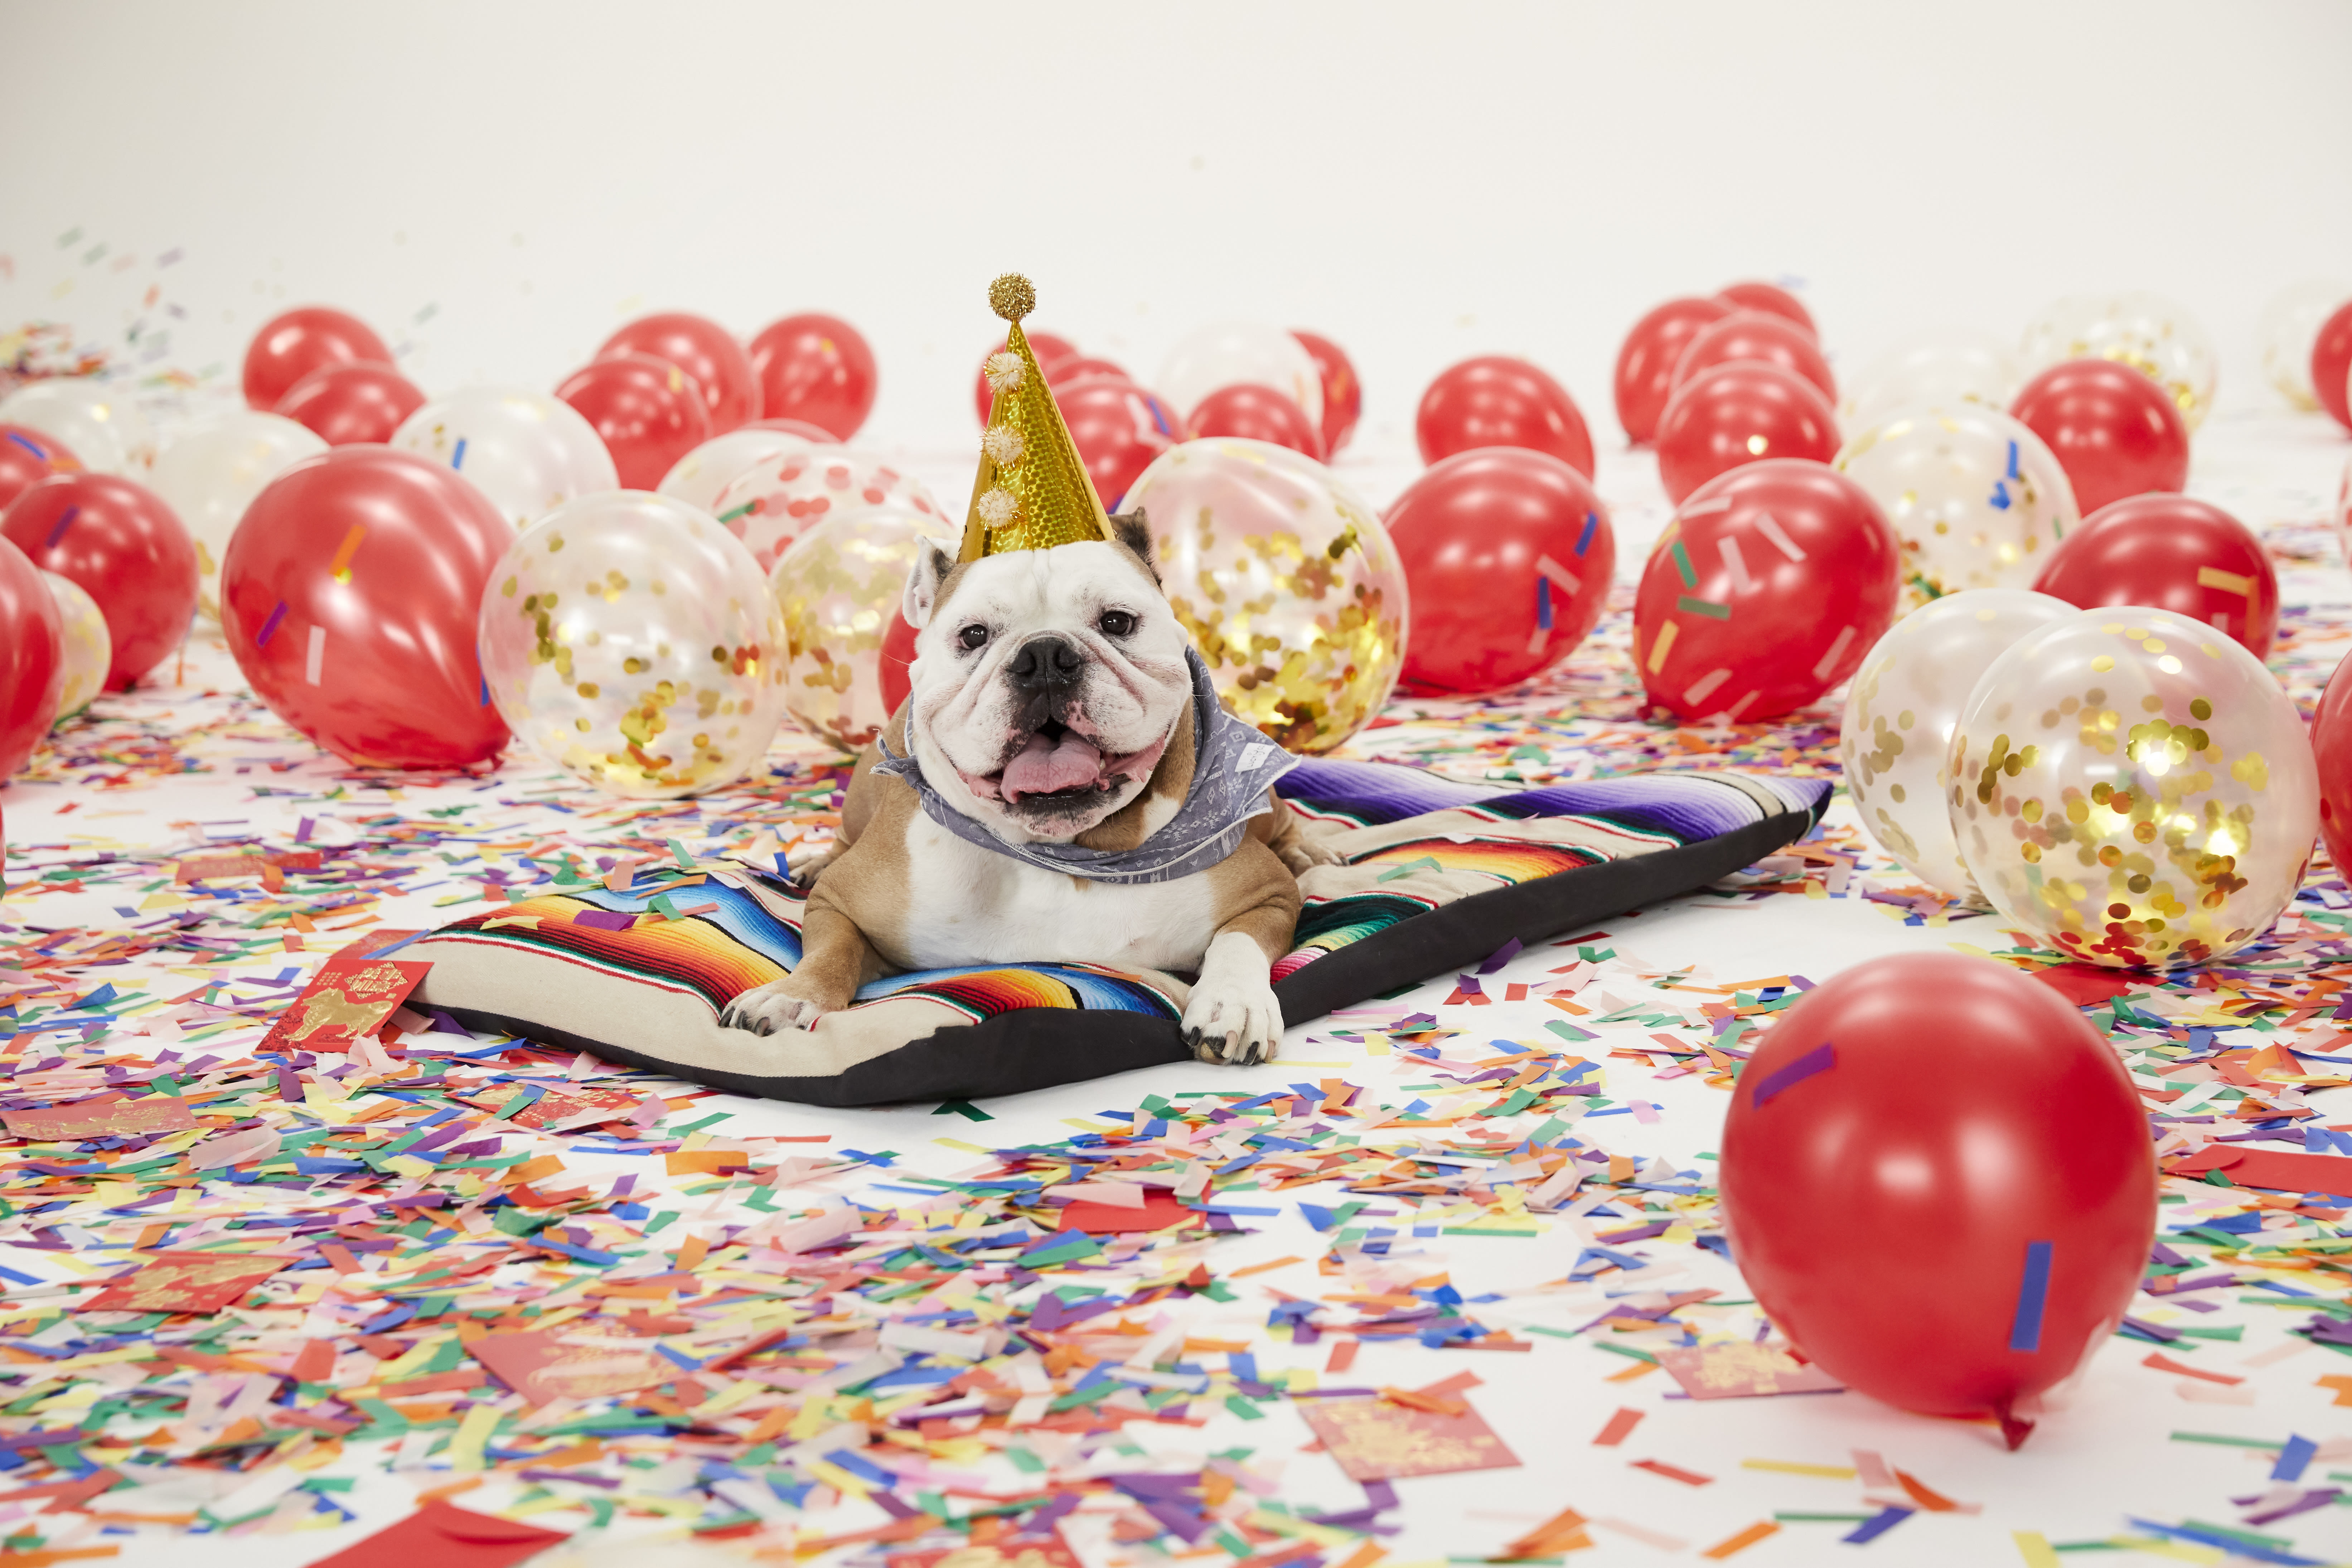 Pop in nordstrom celebrates year of the dog  16  bcit4g